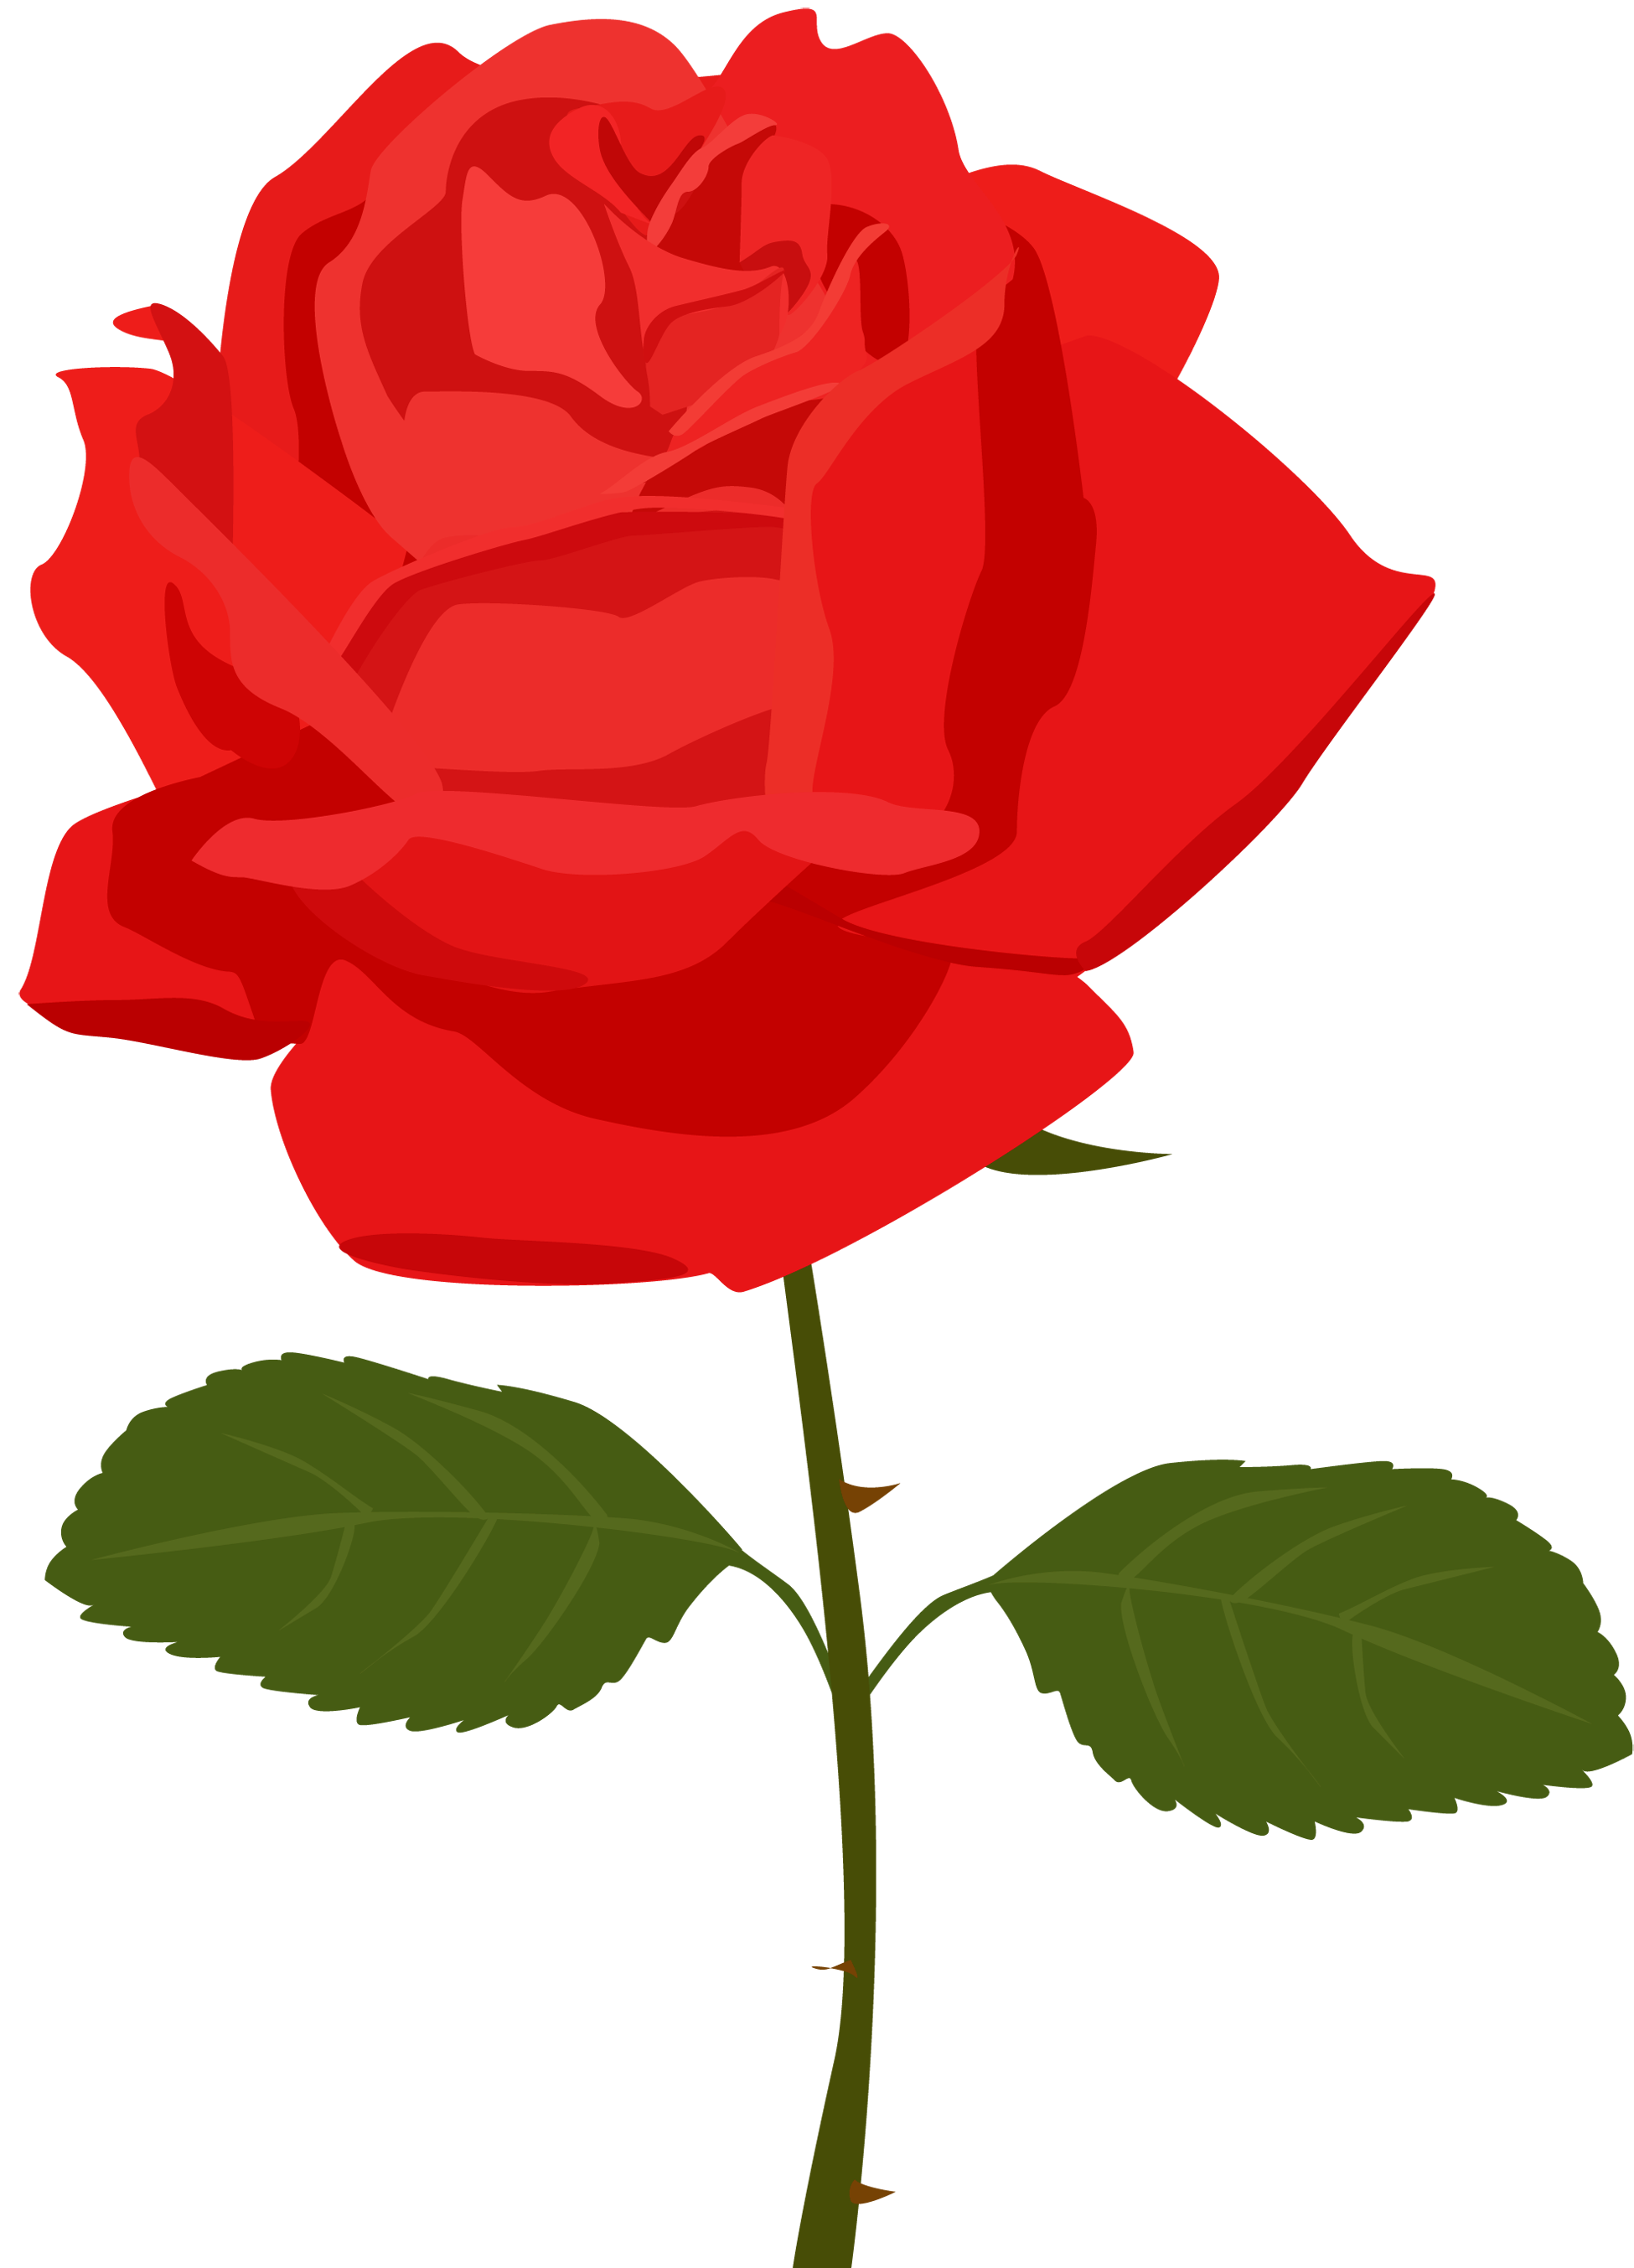 Dozen Red Roses Clipart 10 Red-Dozen Red Roses Clipart 10 Red-3